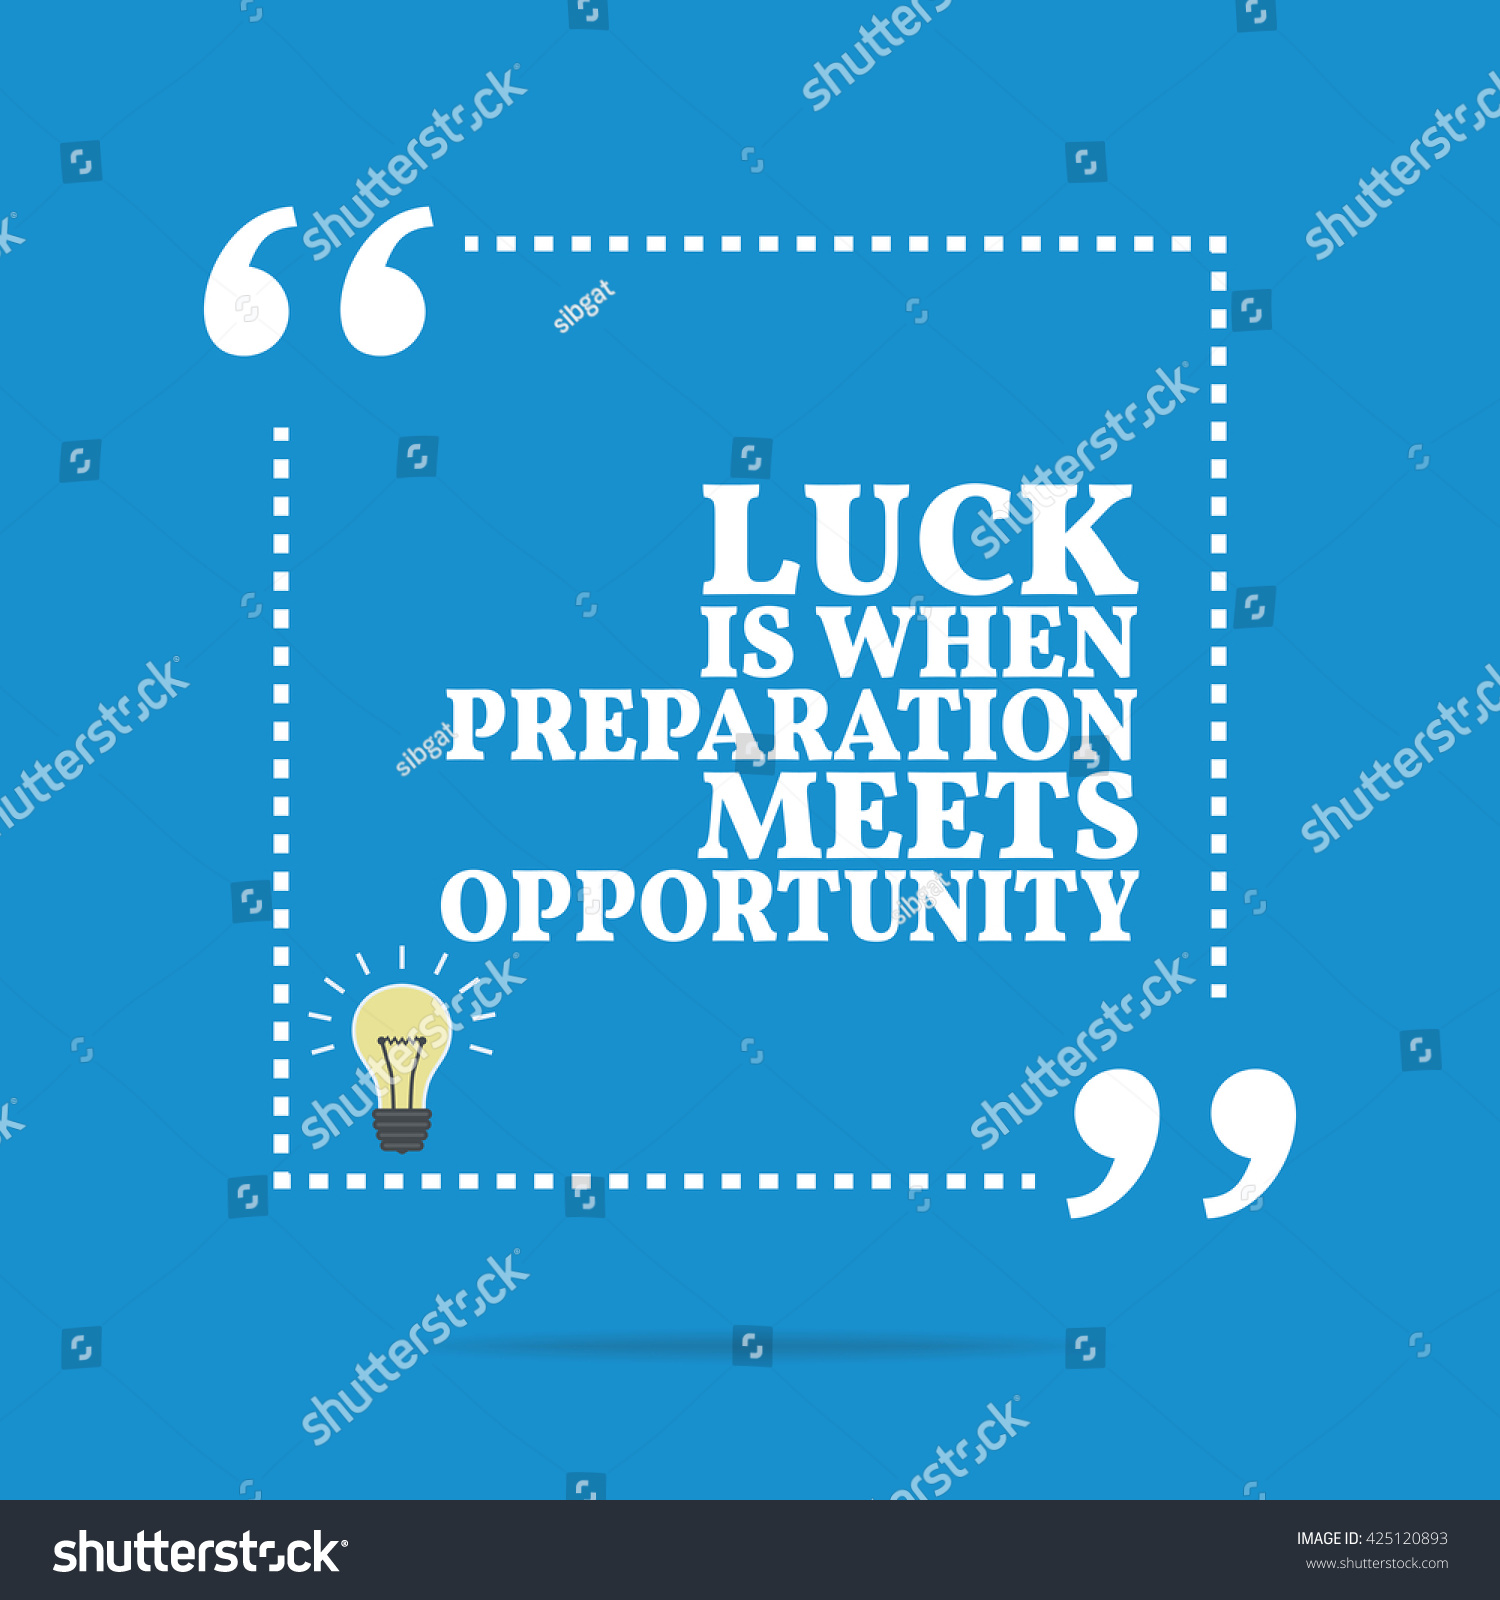 Quote Success Is When Preparation Meets Opportunity: Inspirational Motivational Quote Luck When Preparation